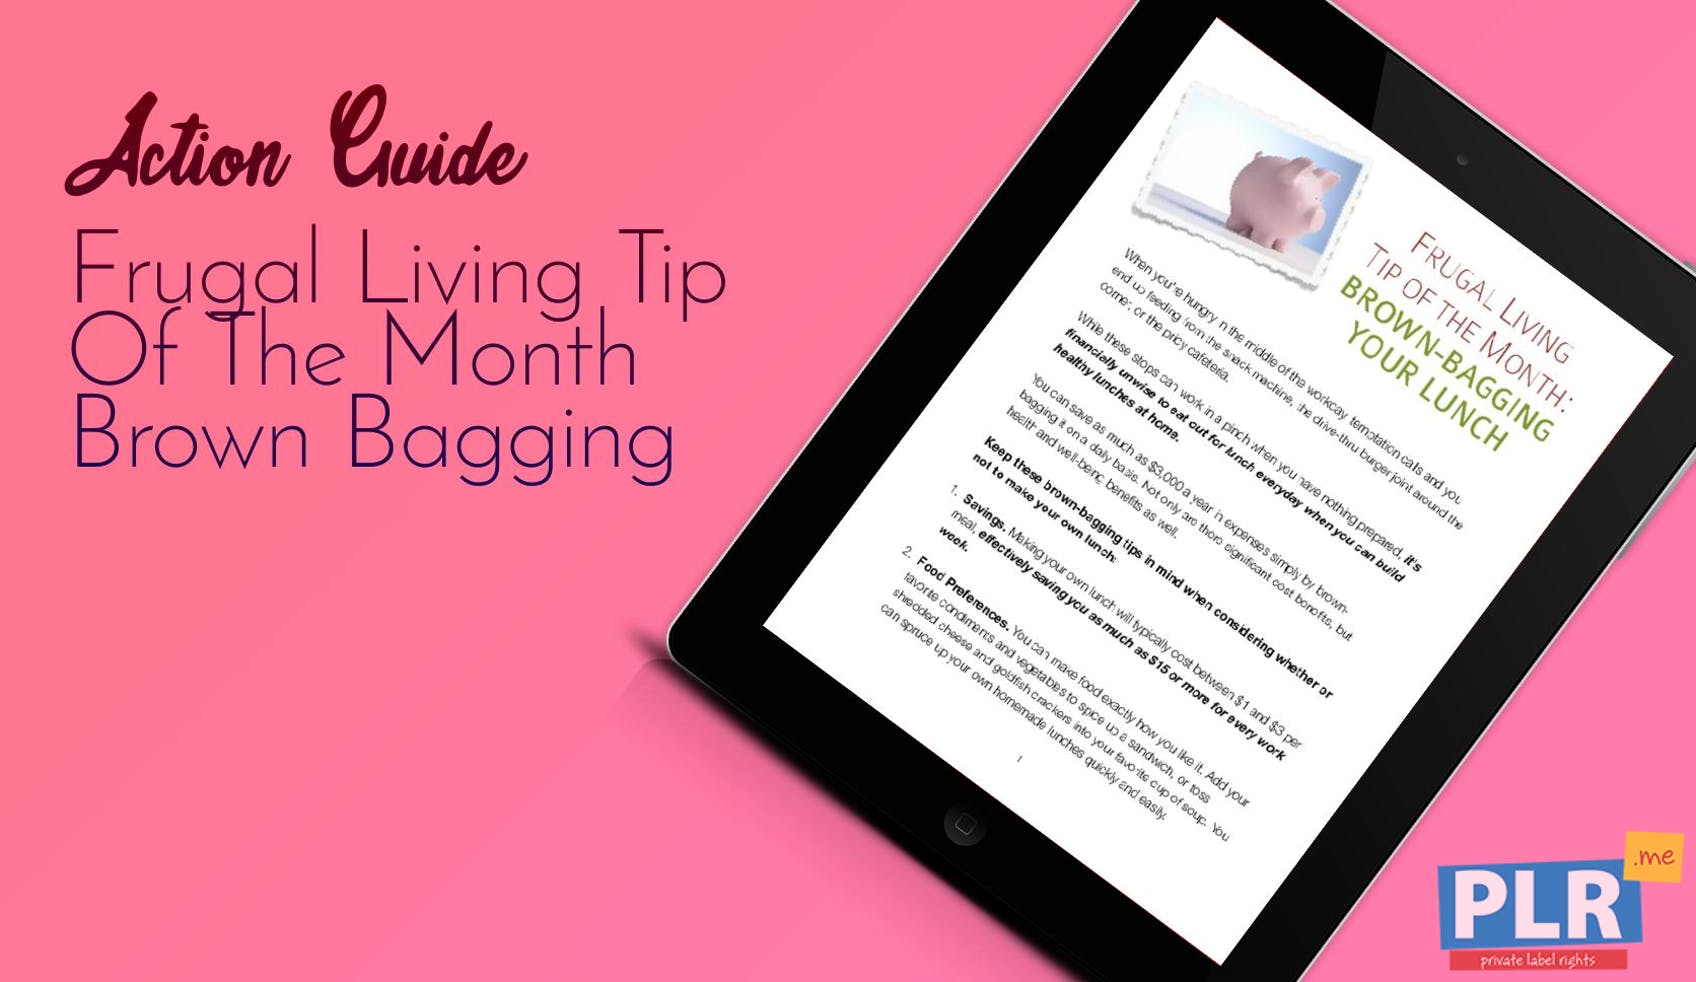 Frugal Living Tip Of The Month Brown Bagging